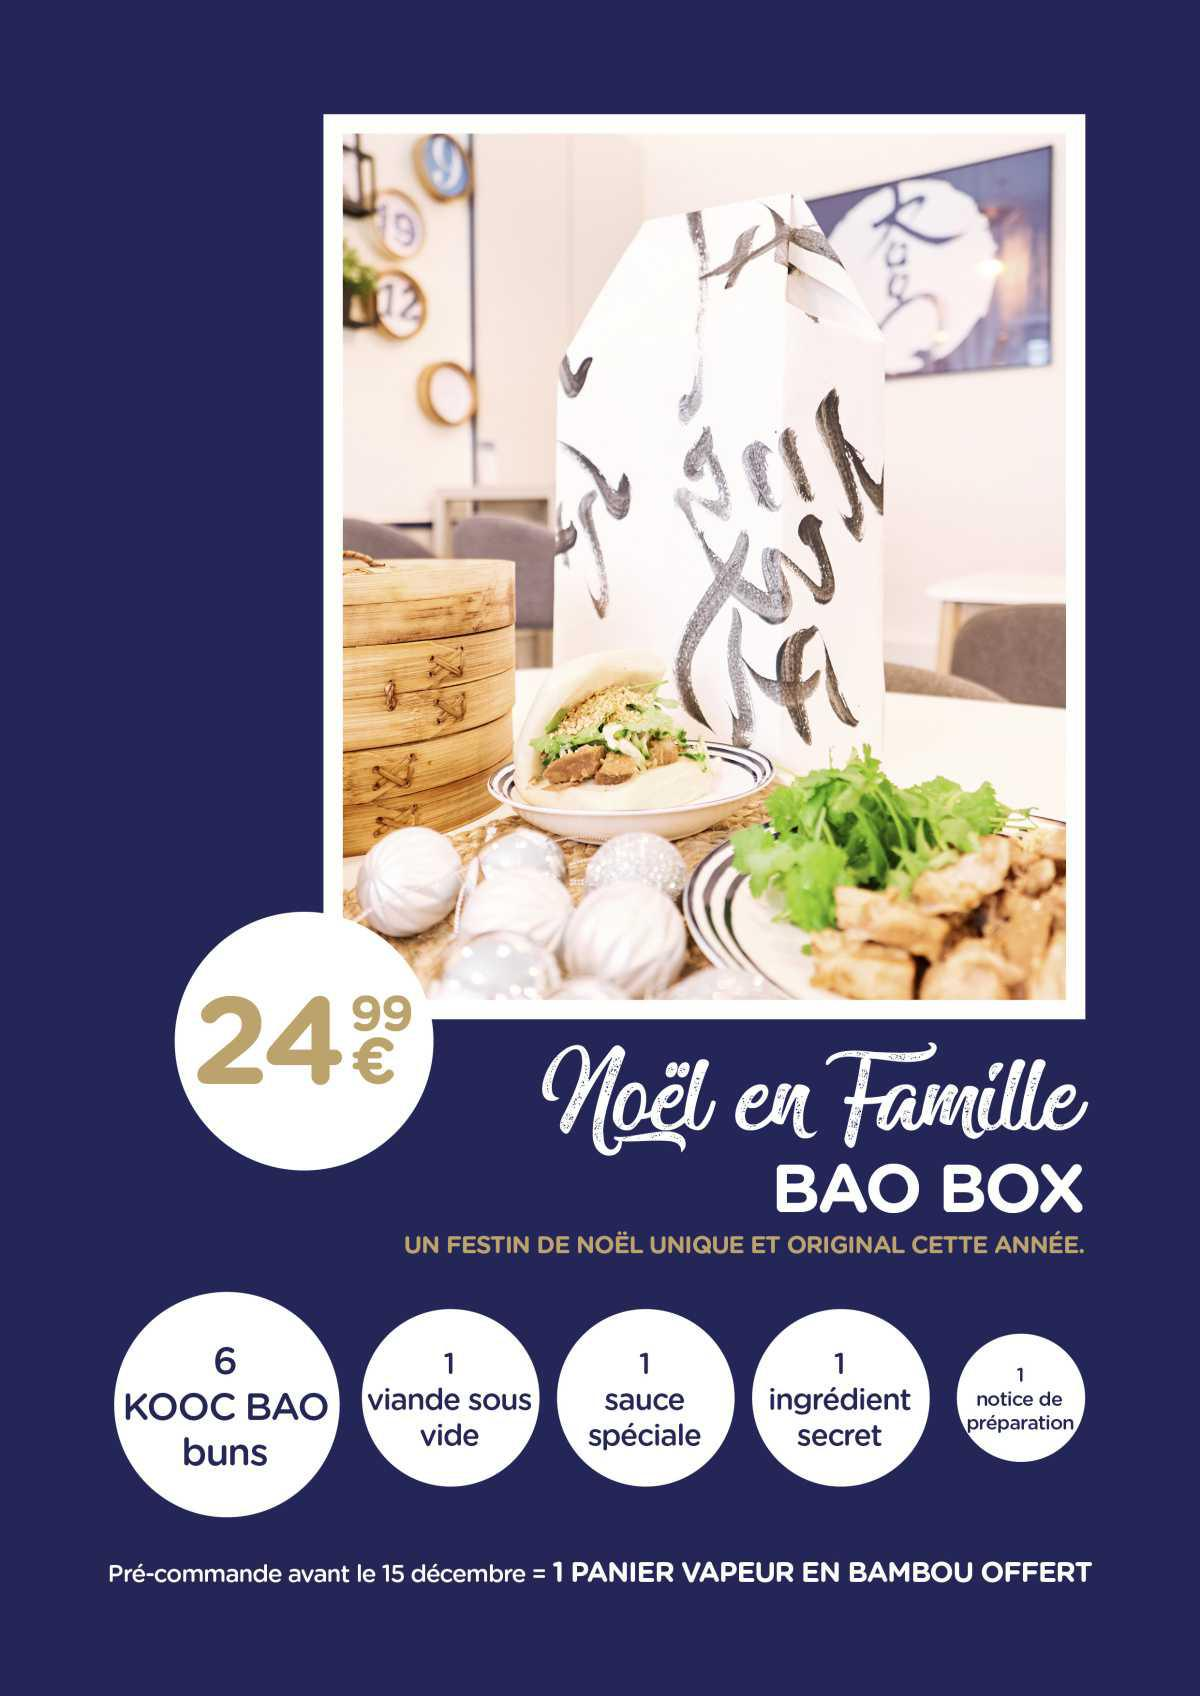 聖誕禮盒🎁 。 與家人共享的美味時光 _ BAO BOX, the unique way to celebrate Xmas with your family